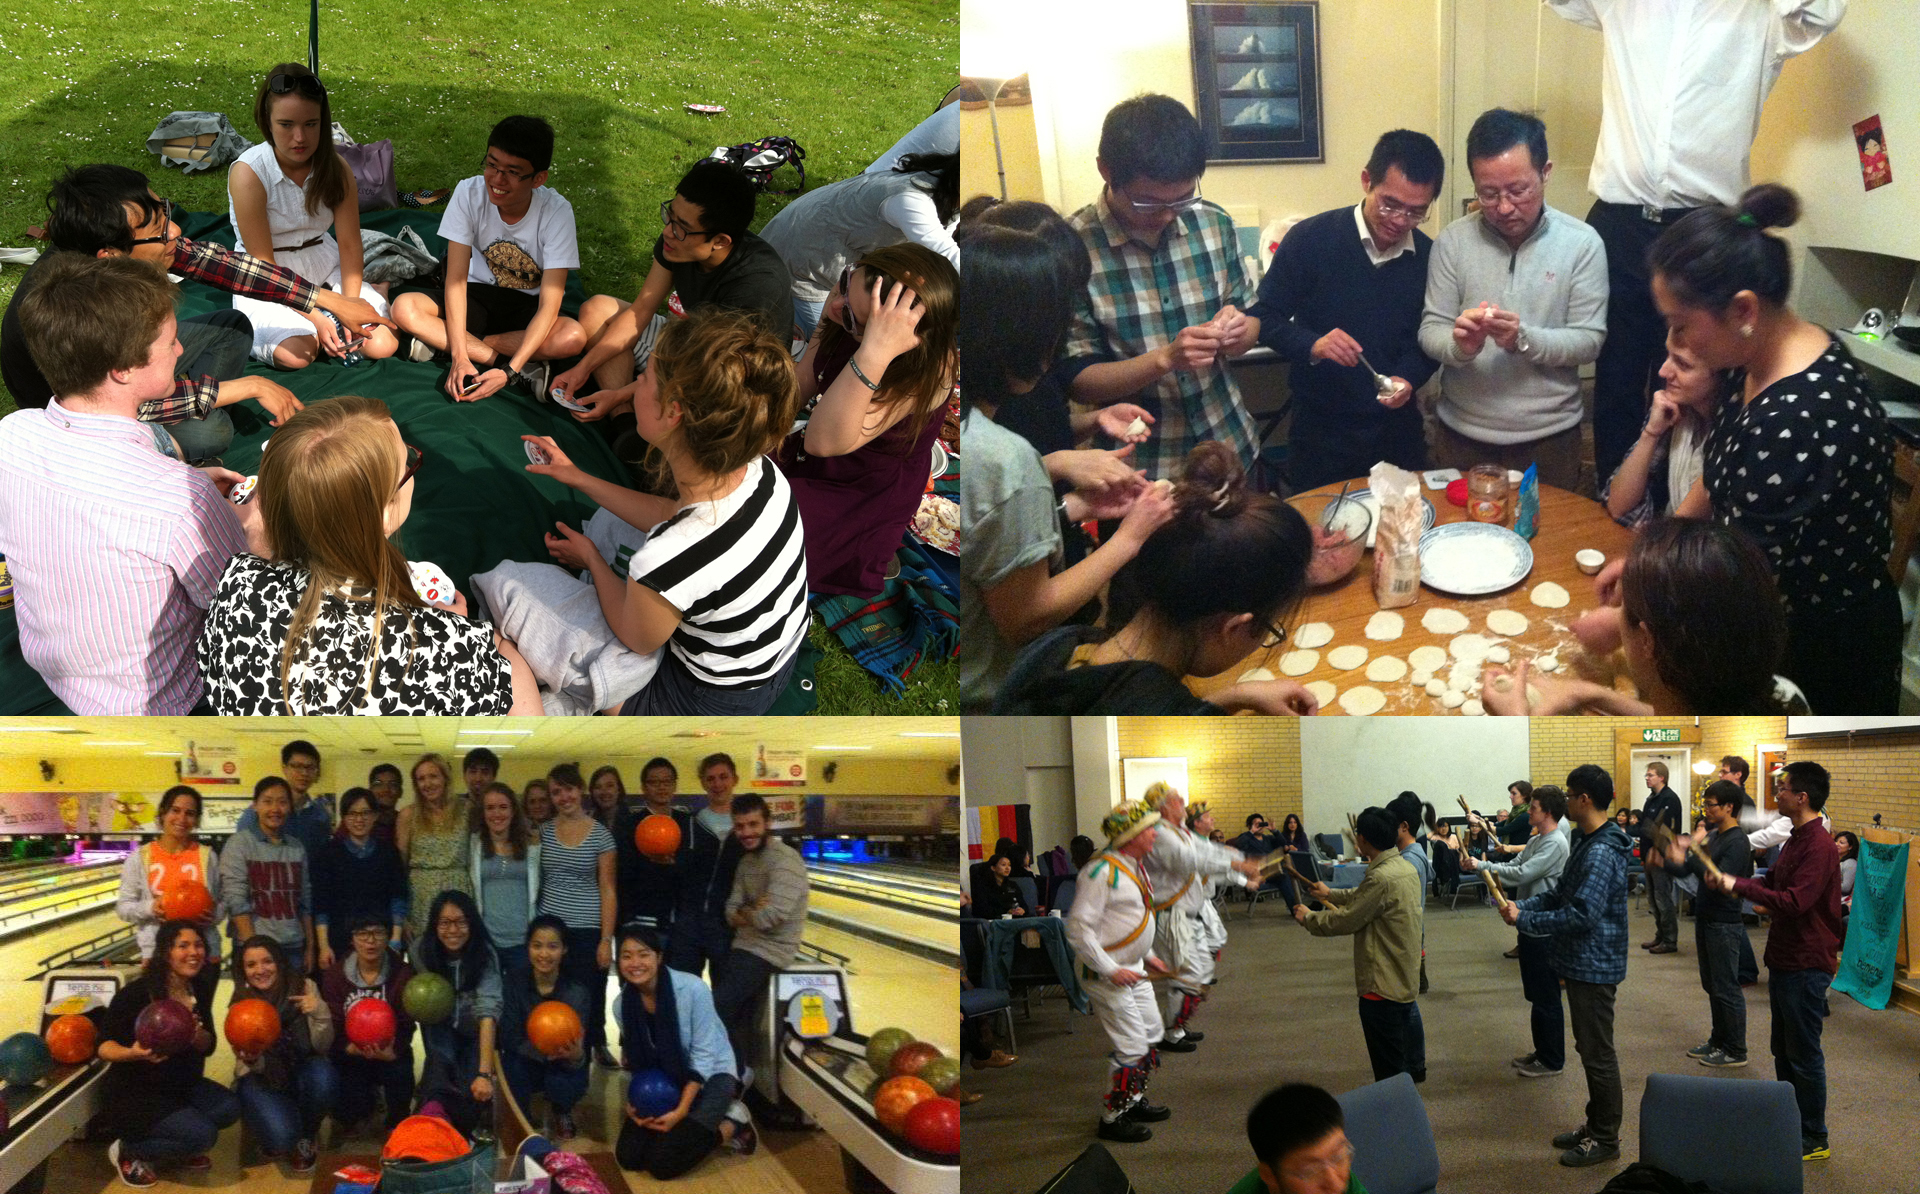 The Christian Union organises fun activities such as games, cookery and dancing